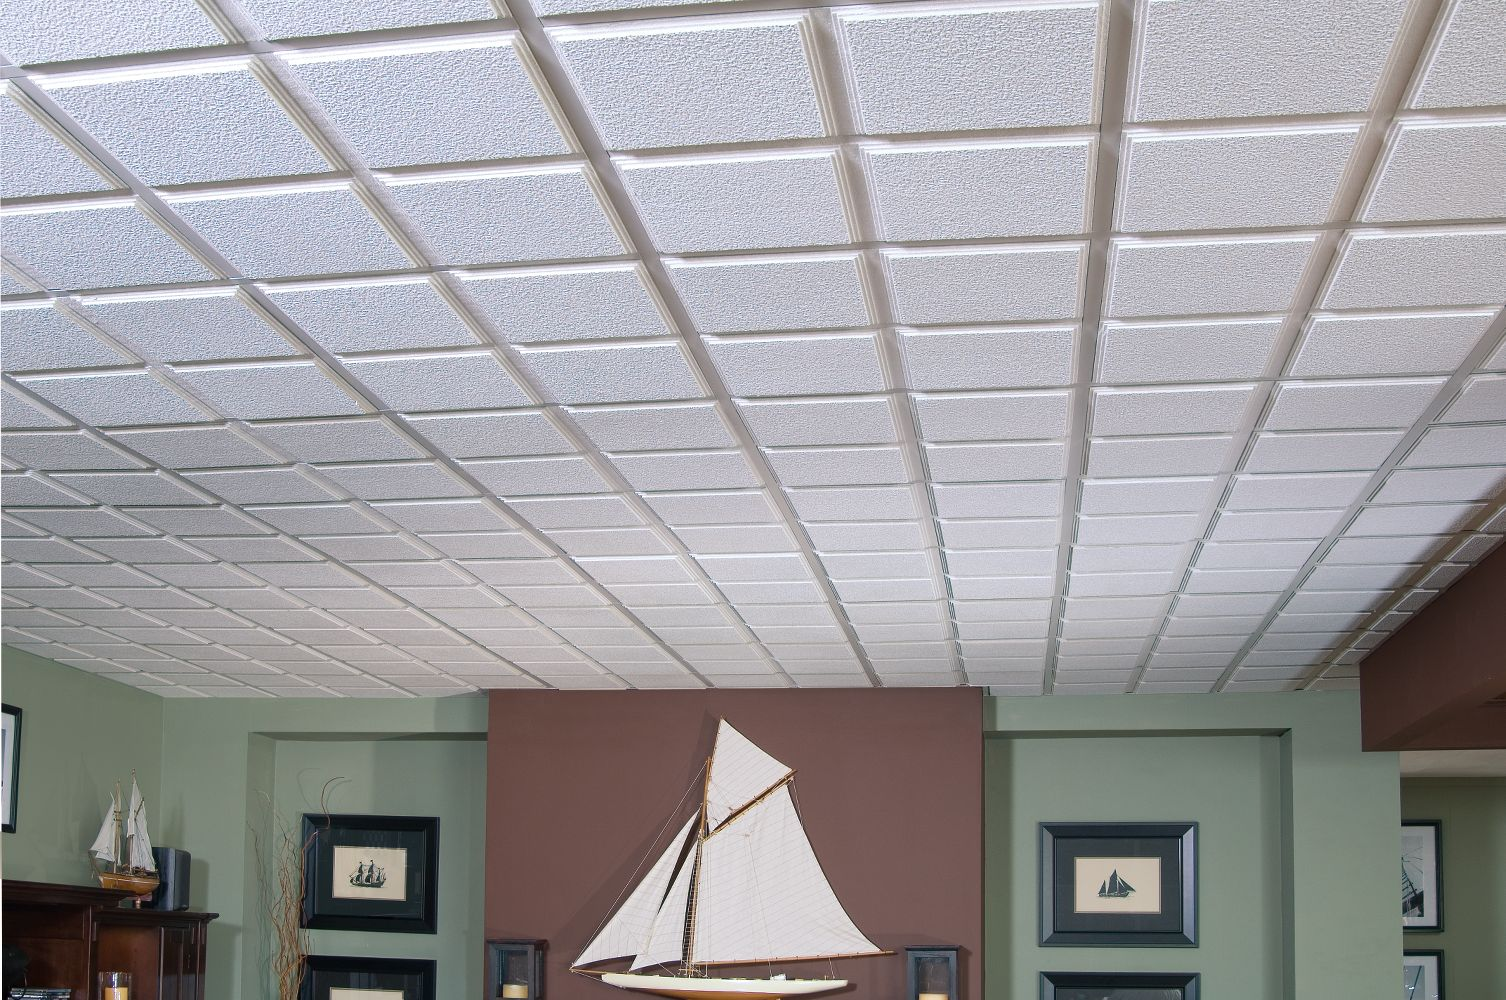 Armstrong ceiling tiles armstrong ceiling tiles images tile armstrong ceiling tiles dune gallery tile flooring design ideas dune ceiling tile 2x2 armstrong cirrus dailygadgetfo Image collections